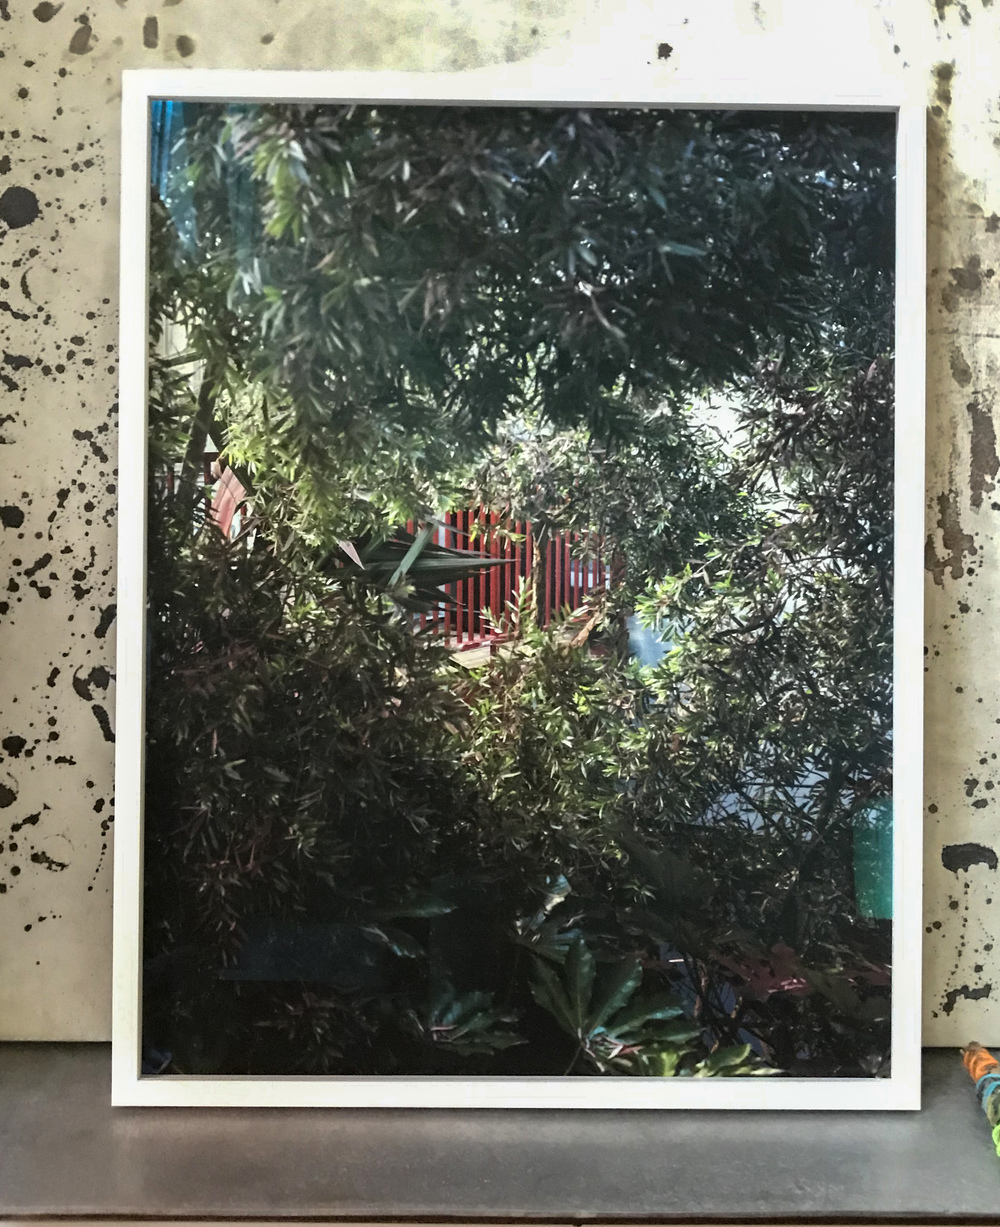 The Edge Effect: International Juried Exhibition